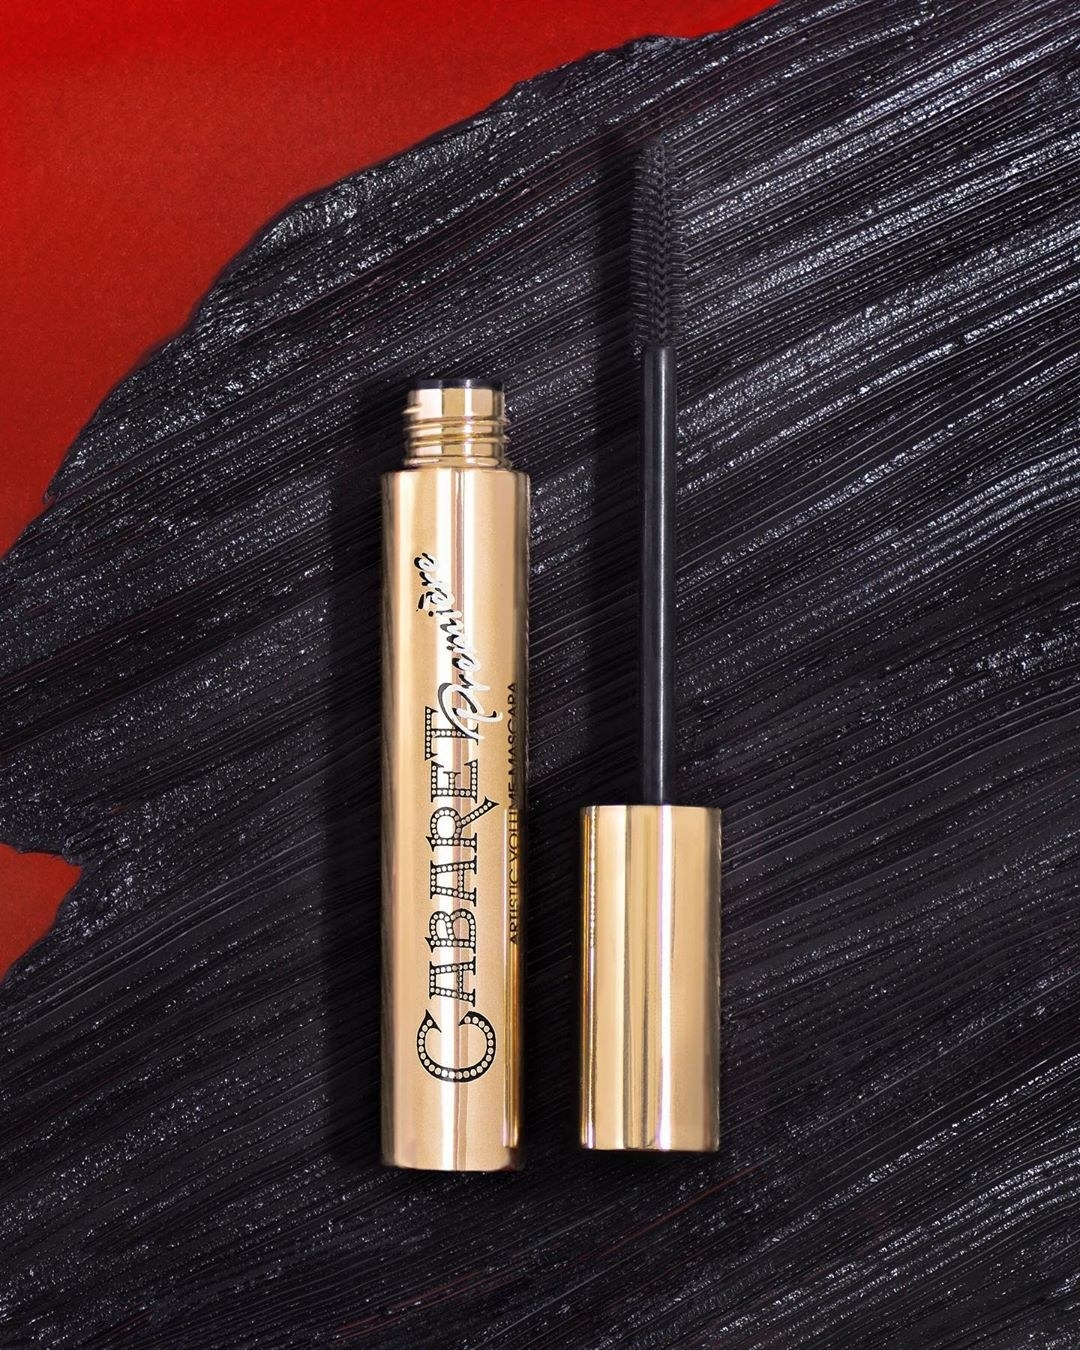 The gold-packaged mascara